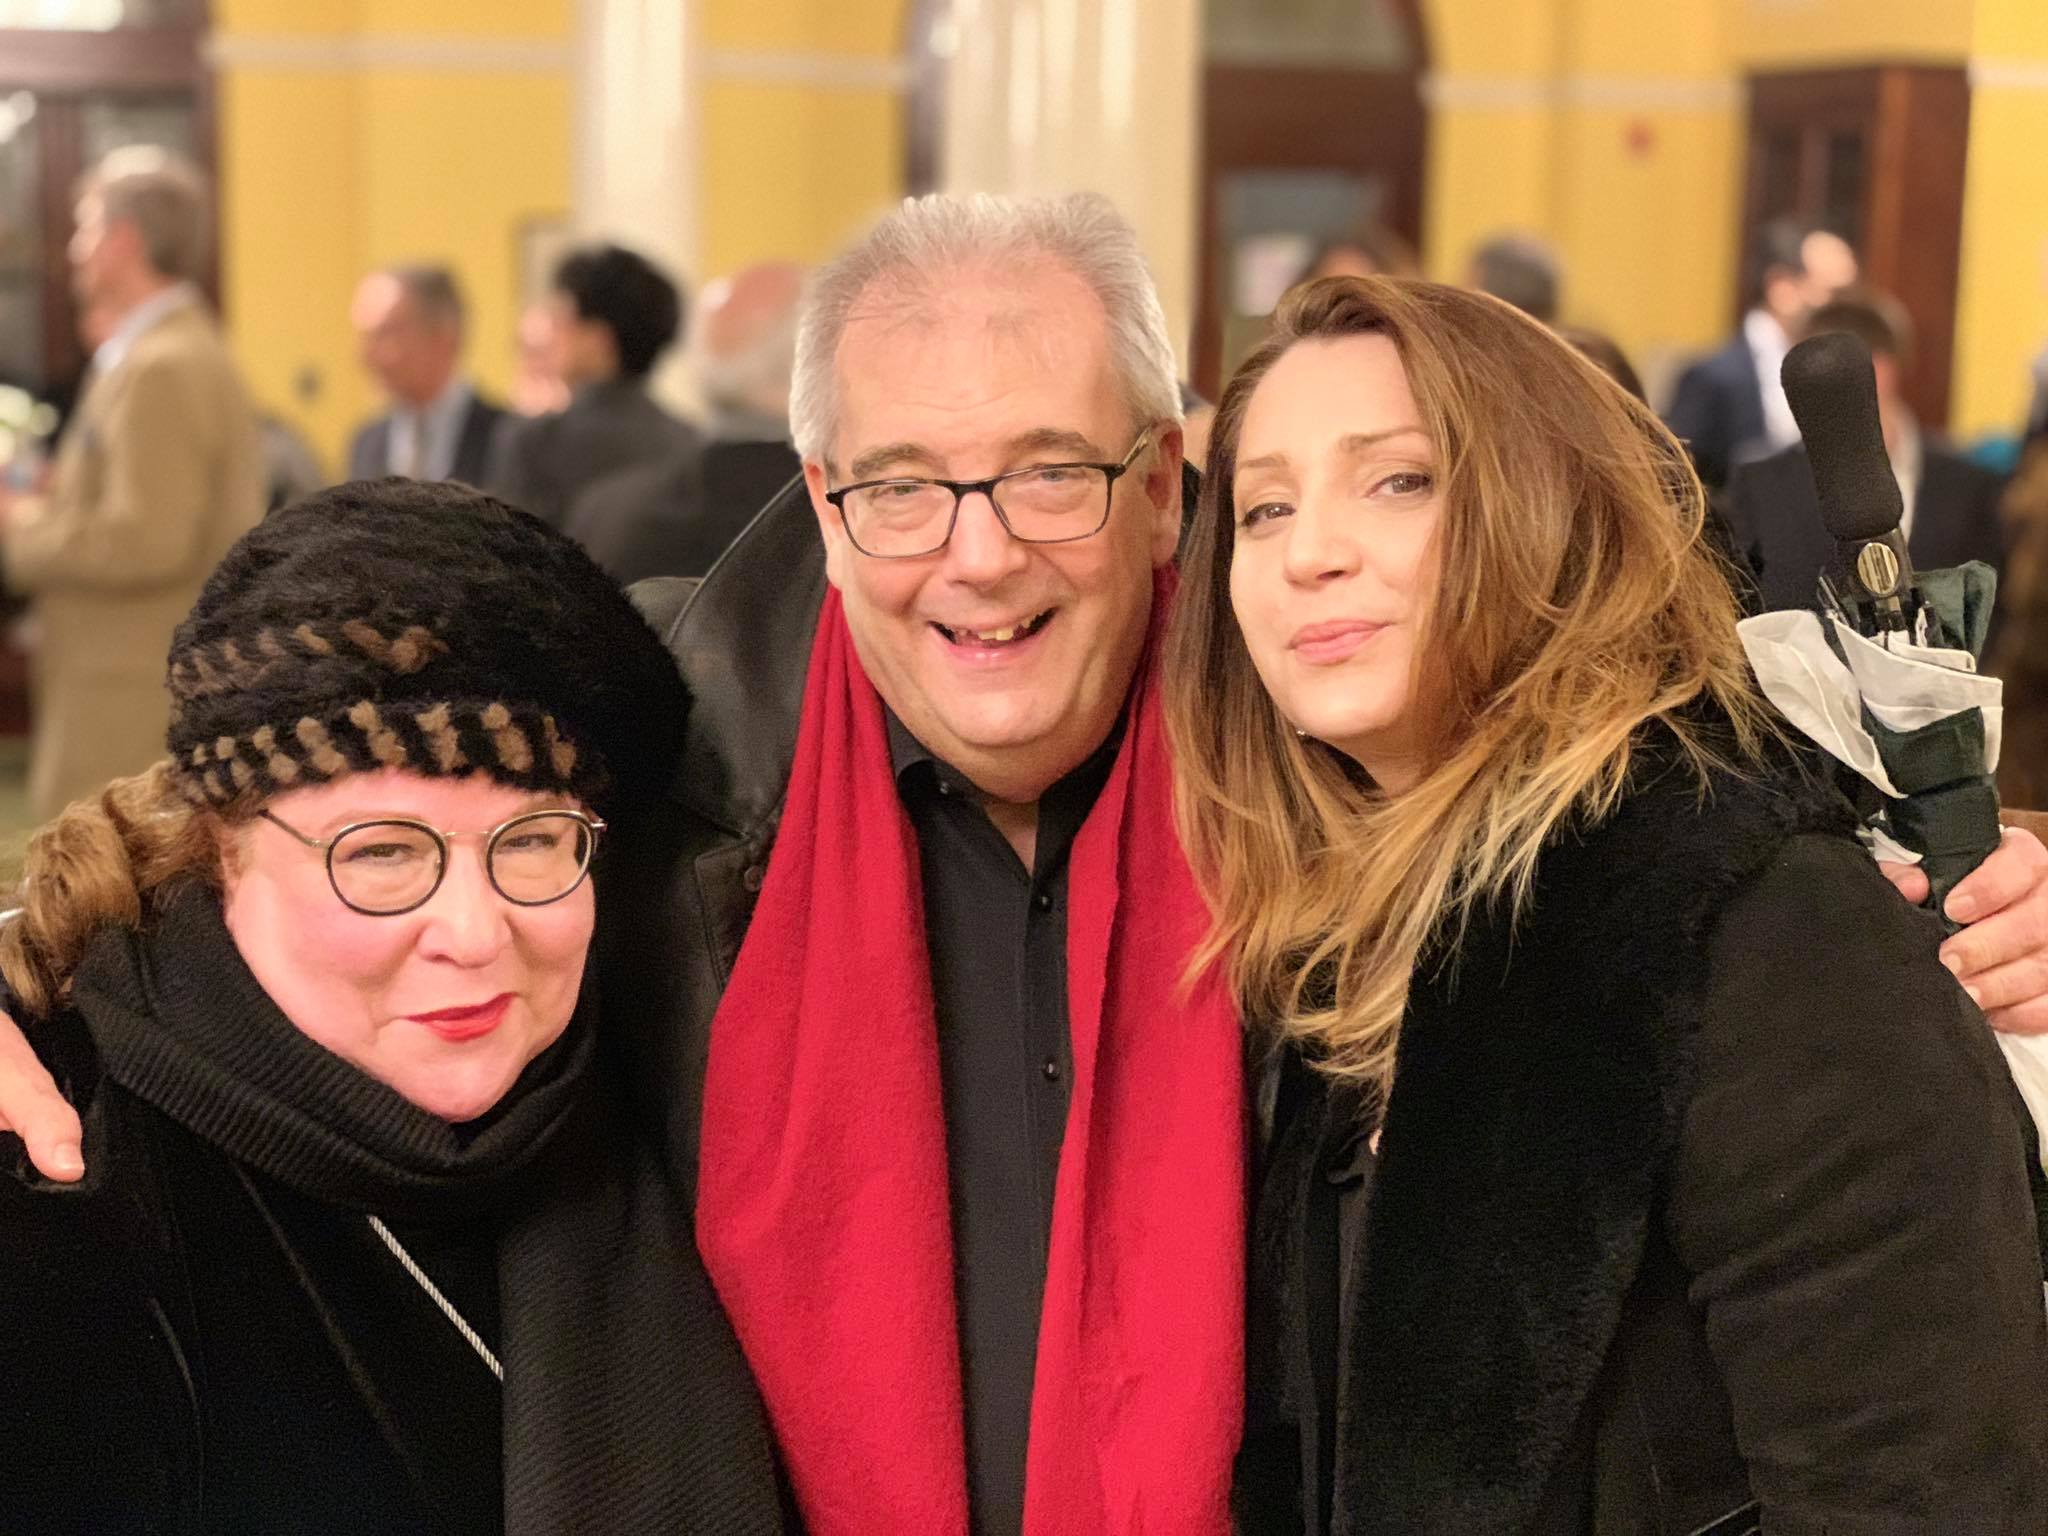 Finals Concert Professional Attendee, John Fisher, former Assistant General Manager of Music Administration at the Metropolitan Opera, surrounded by world renowned sopranos and Jury members, Aprile Millo and Barbara Frittoli.